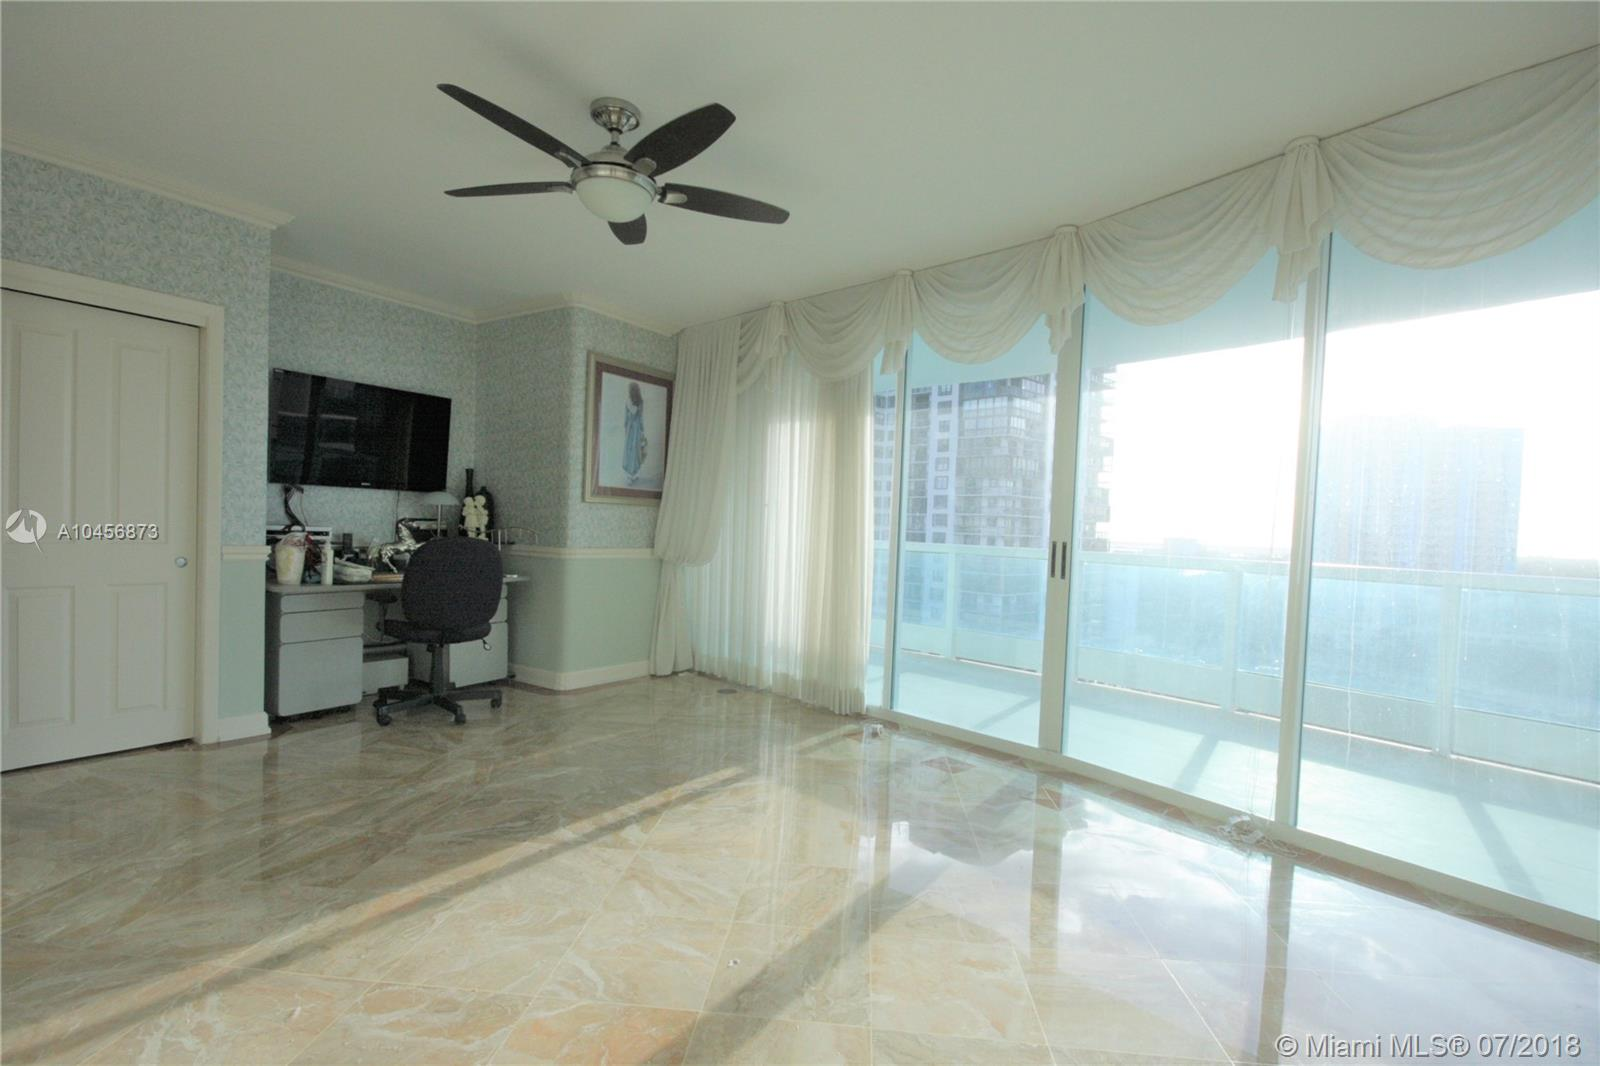 2127 Brickell Avenue, Miami, FL 33129, Bristol Tower Condominium #1702, Brickell, Miami A10456873 image #32